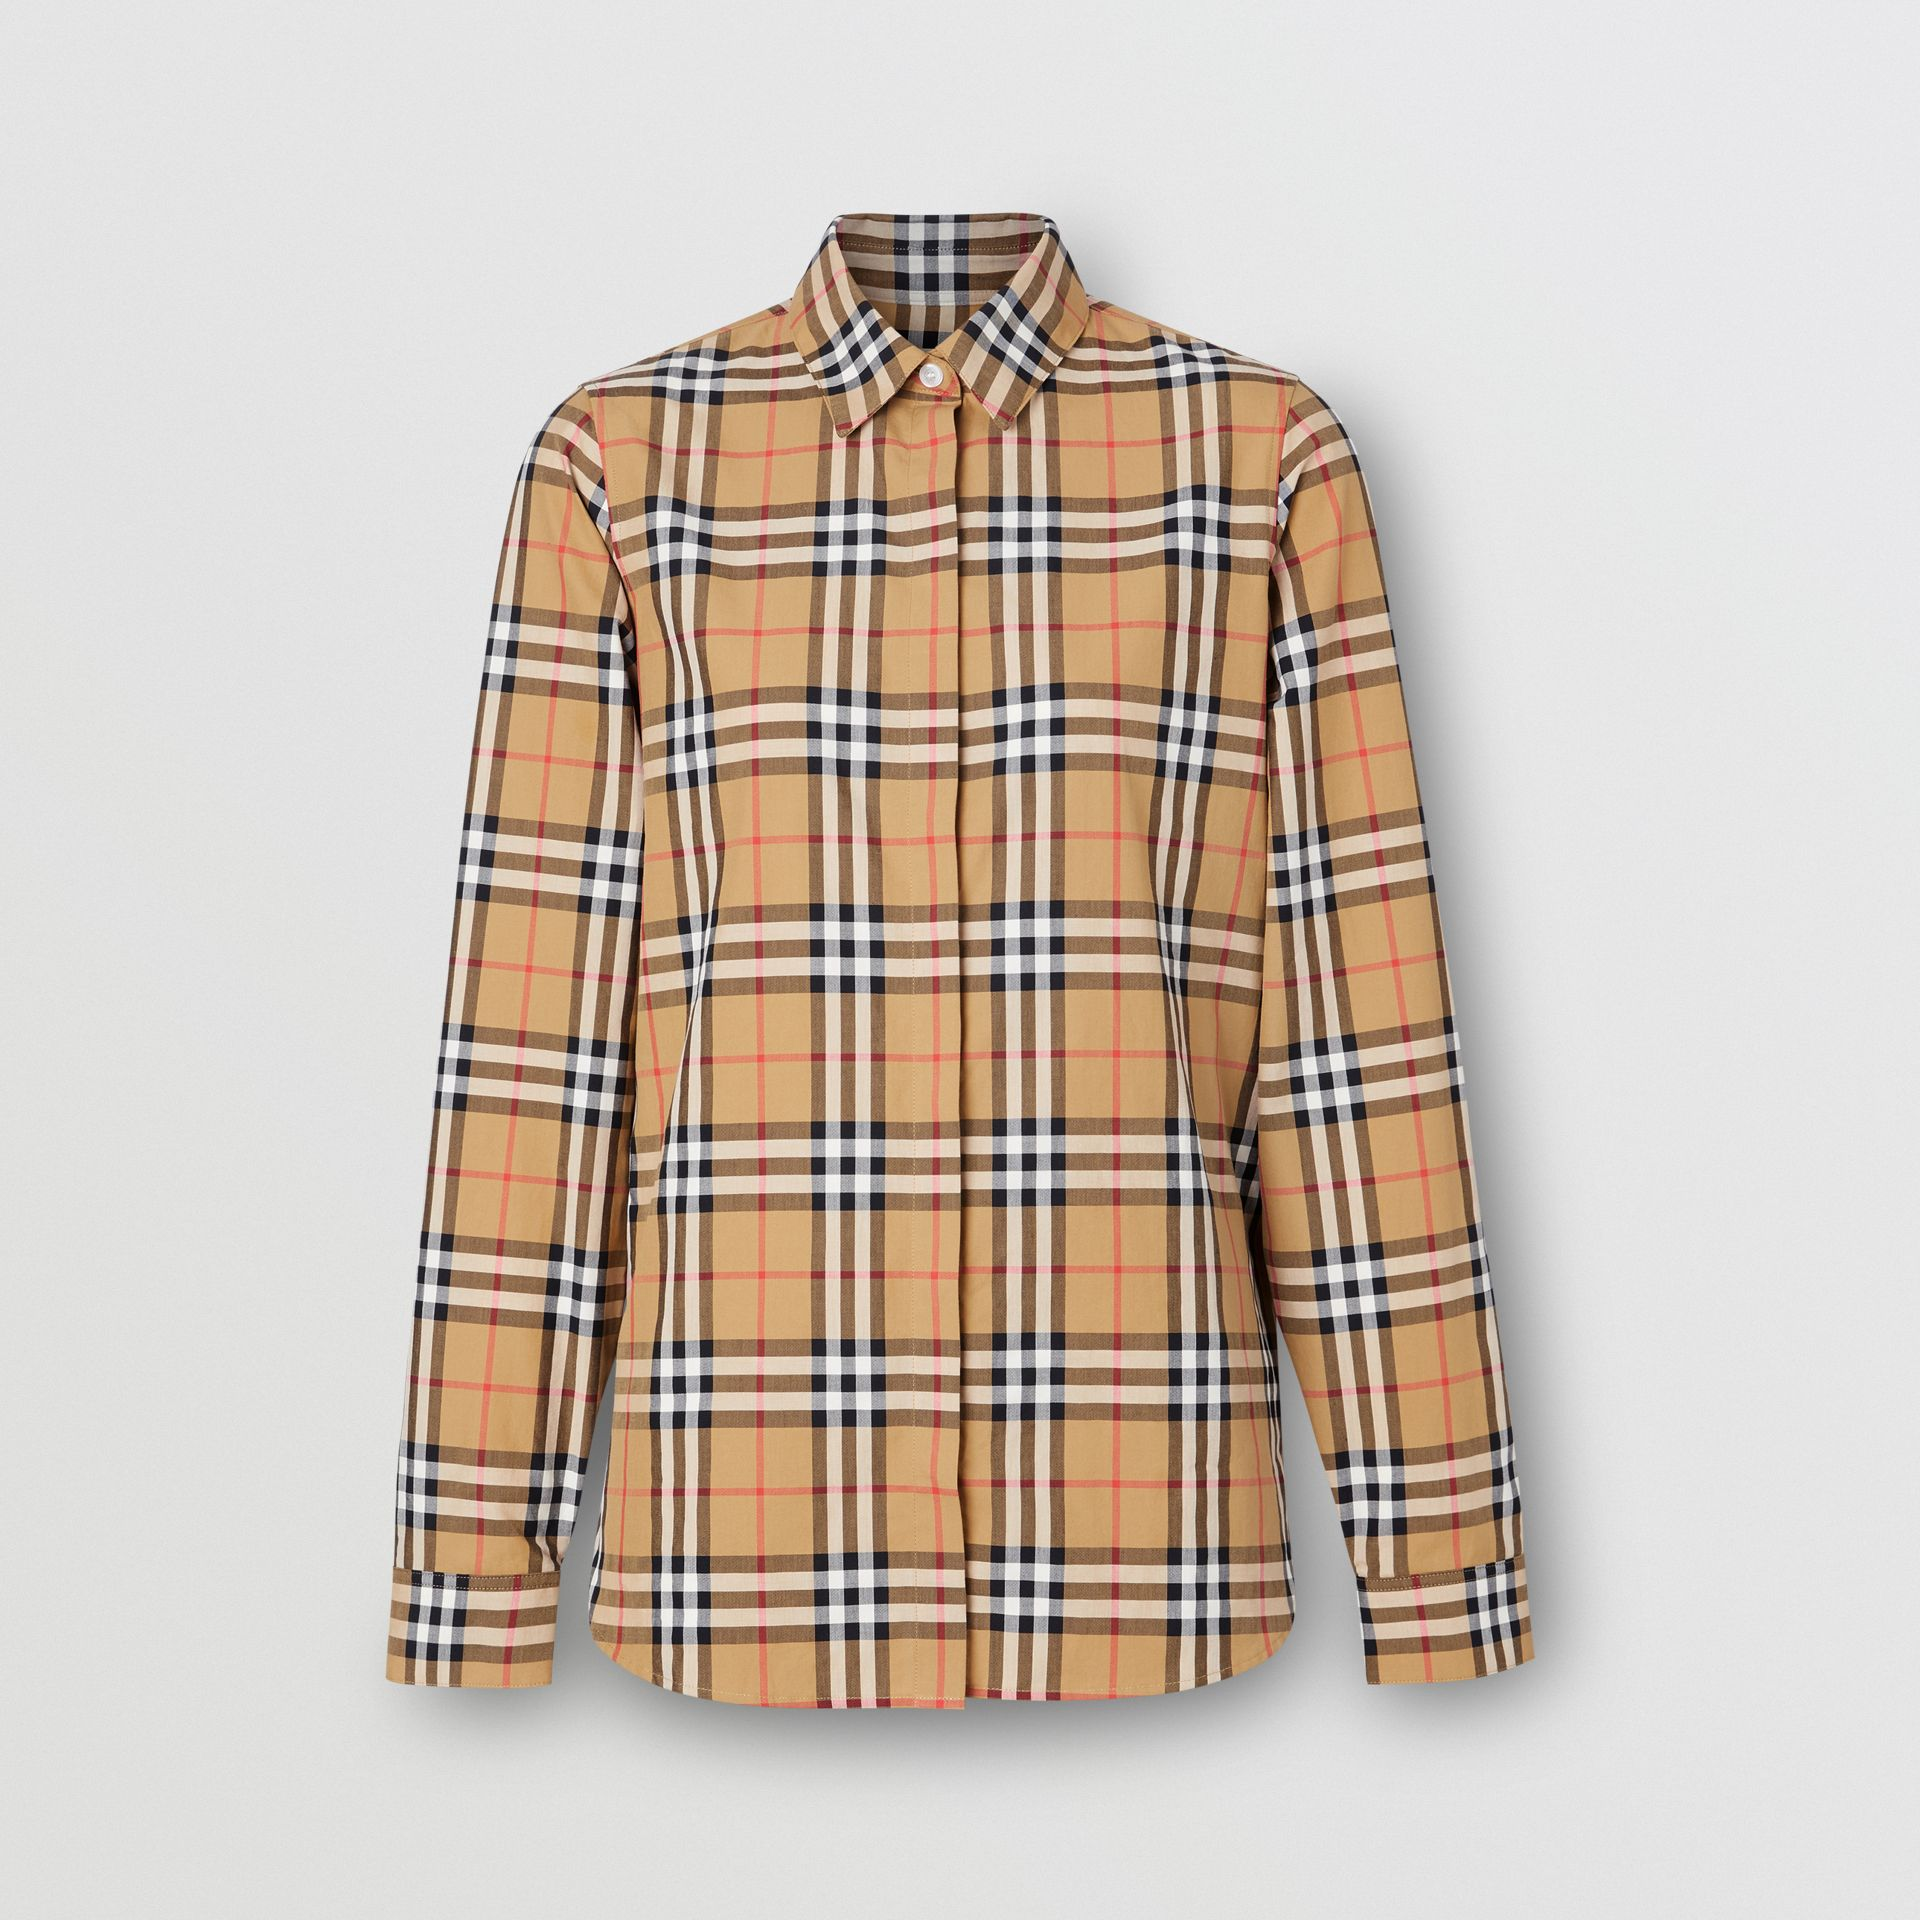 Chemise en coton Vintage check (Jaune Antique) - Femme | Burberry - photo de la galerie 3